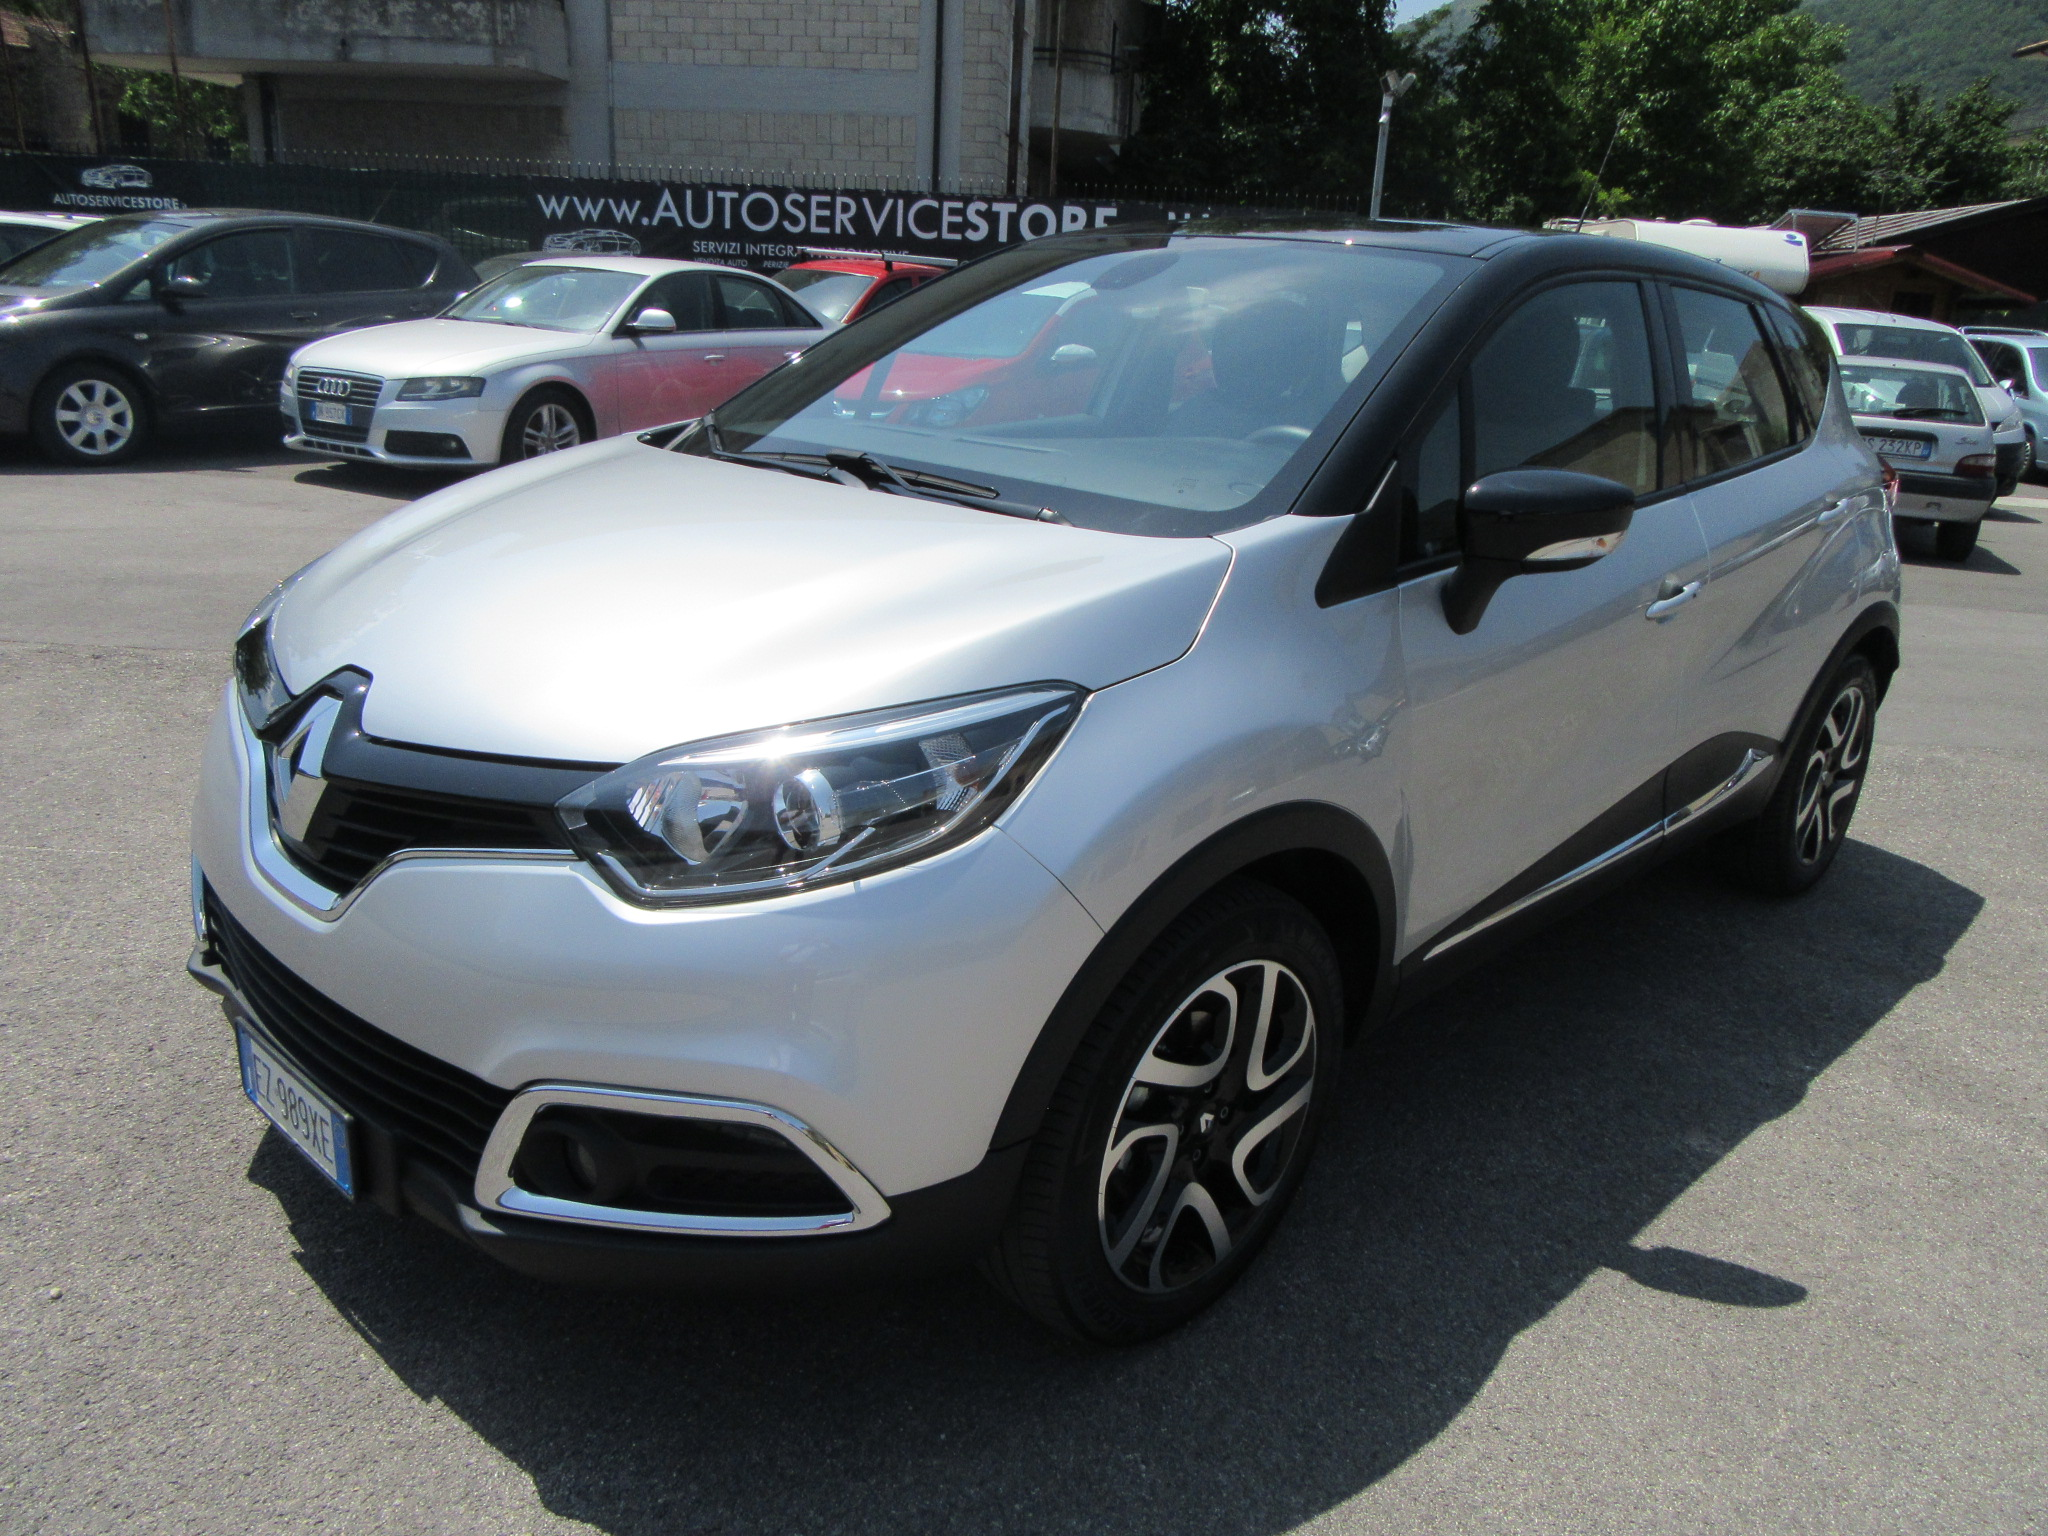 renault captur 1 5 dci 90 cv autoservicestore. Black Bedroom Furniture Sets. Home Design Ideas